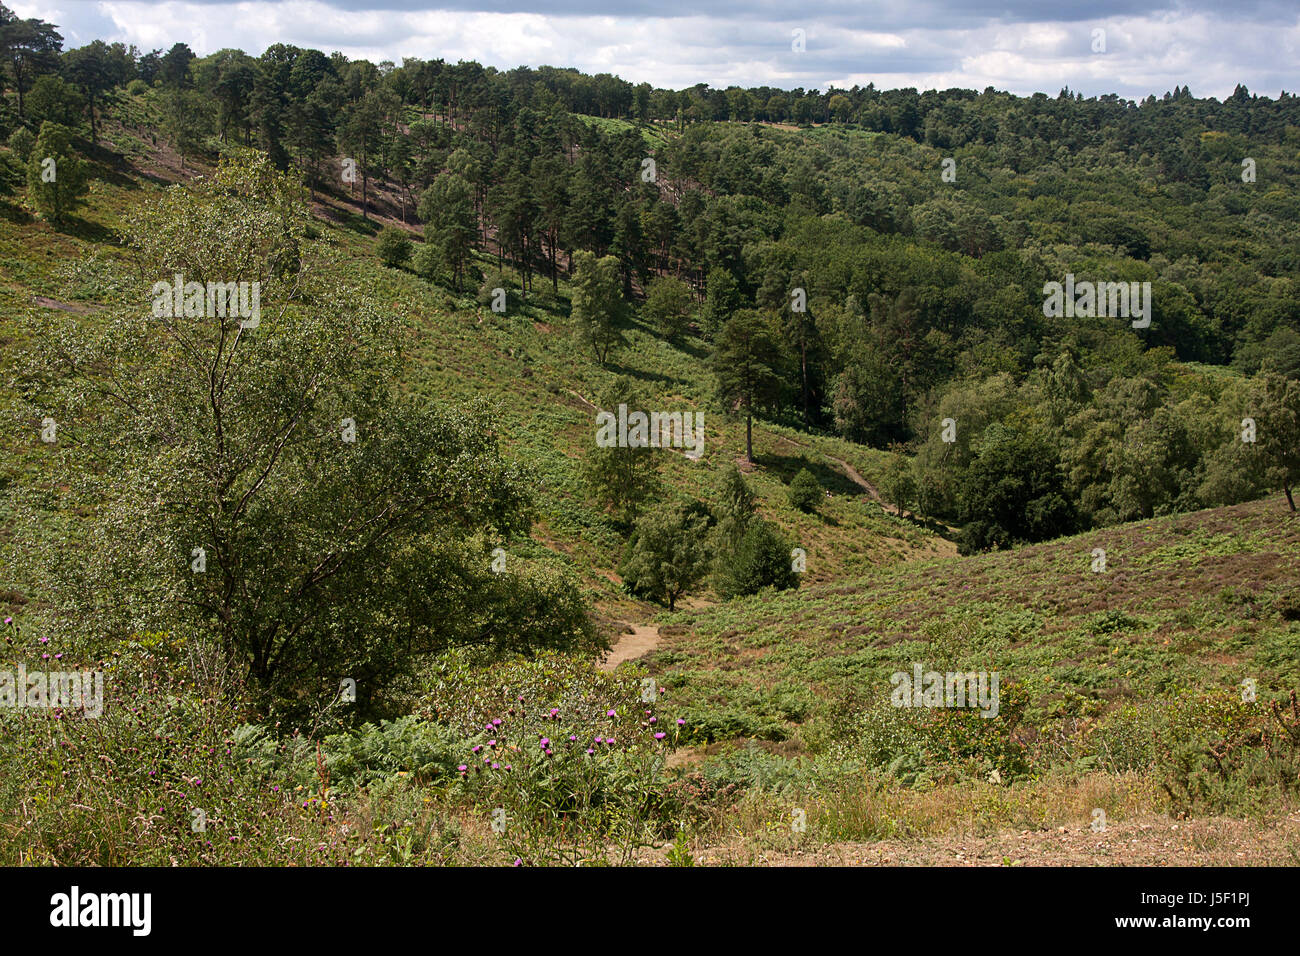 Devils Punchbowl, ancient spring sapped valley in Britain dating  back to the Mesozoic period, Hindhead, Surrey - Stock Image